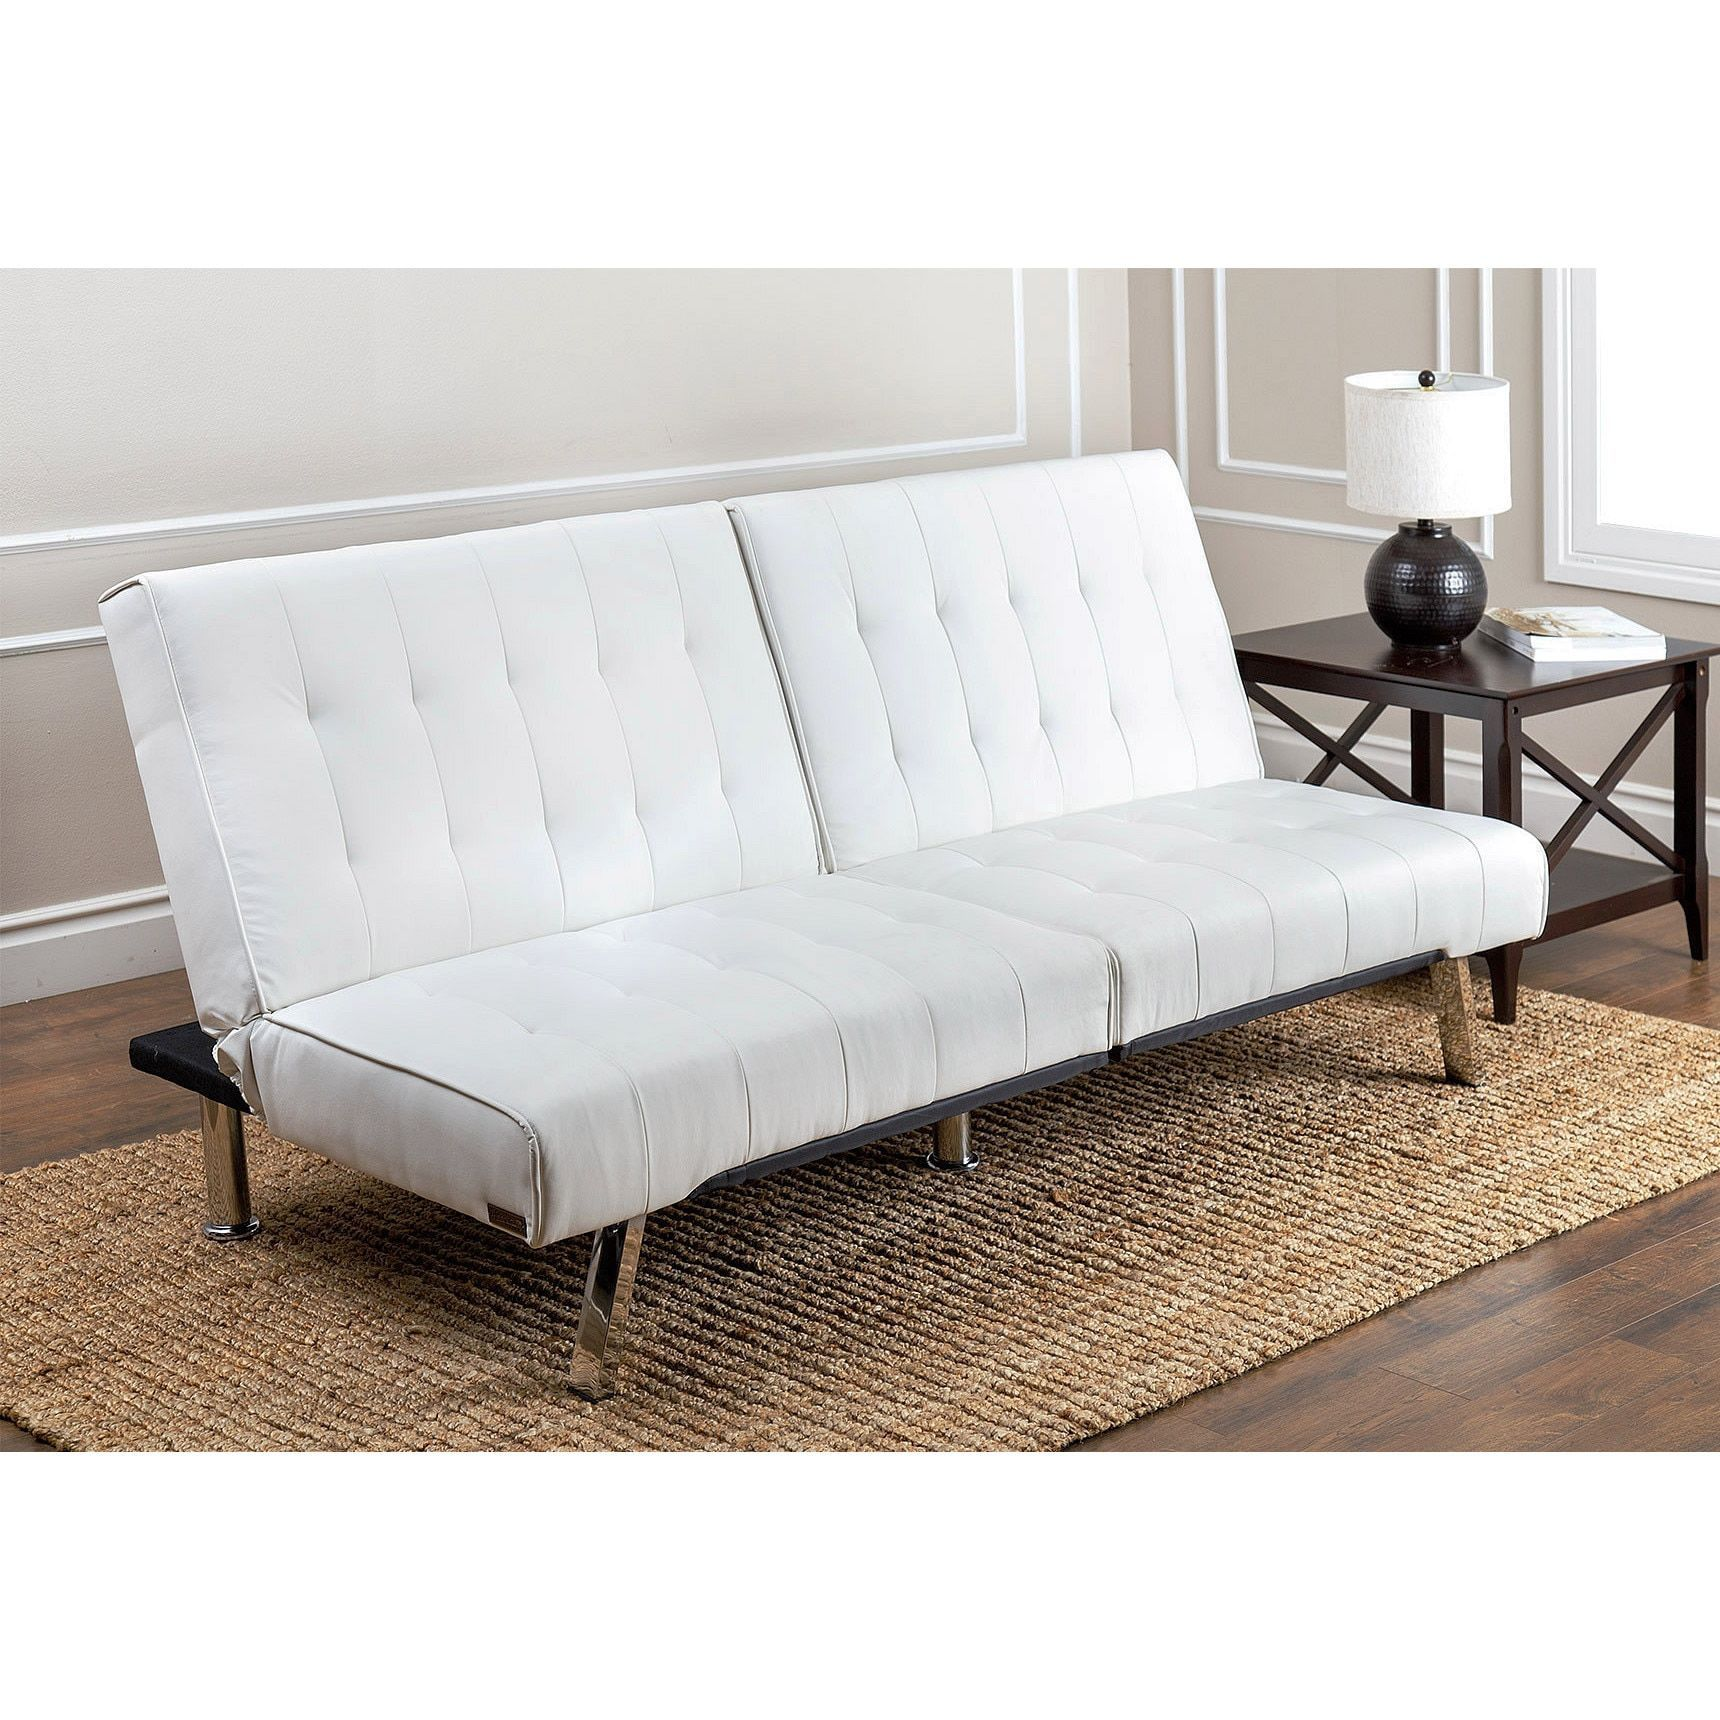 Abbyson Living Jackson Ivory Leather Foldable Futon Sofa Bed White Faux